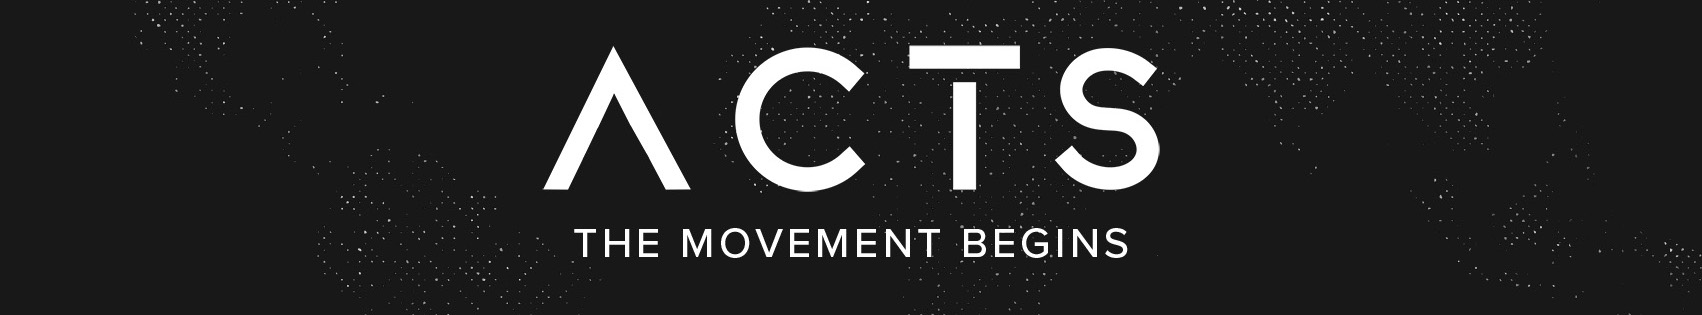 Acts: The Movement Begins